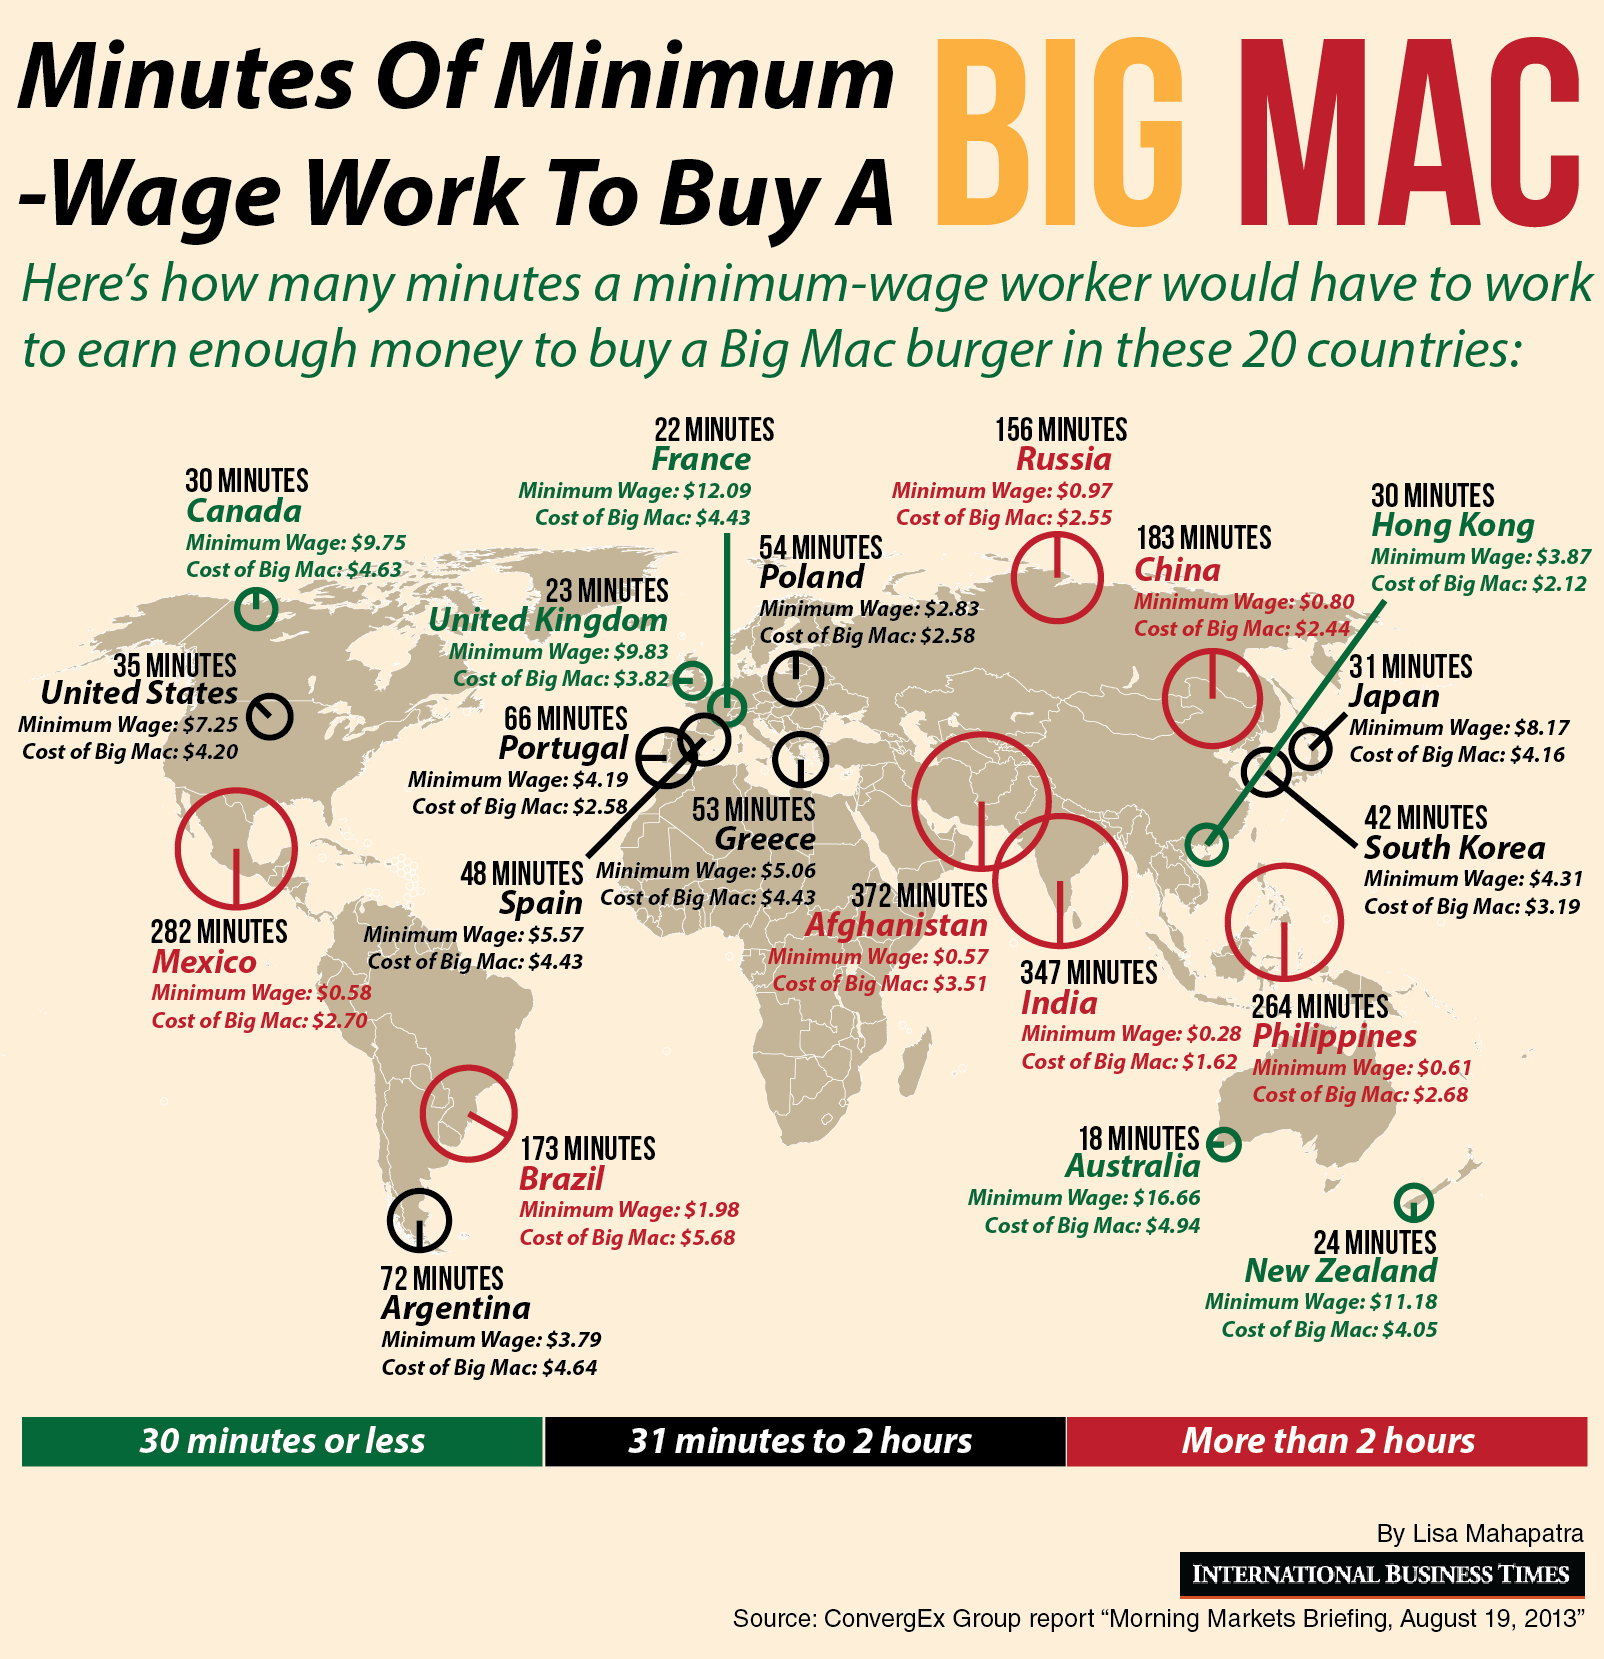 minutes of work for a big mac